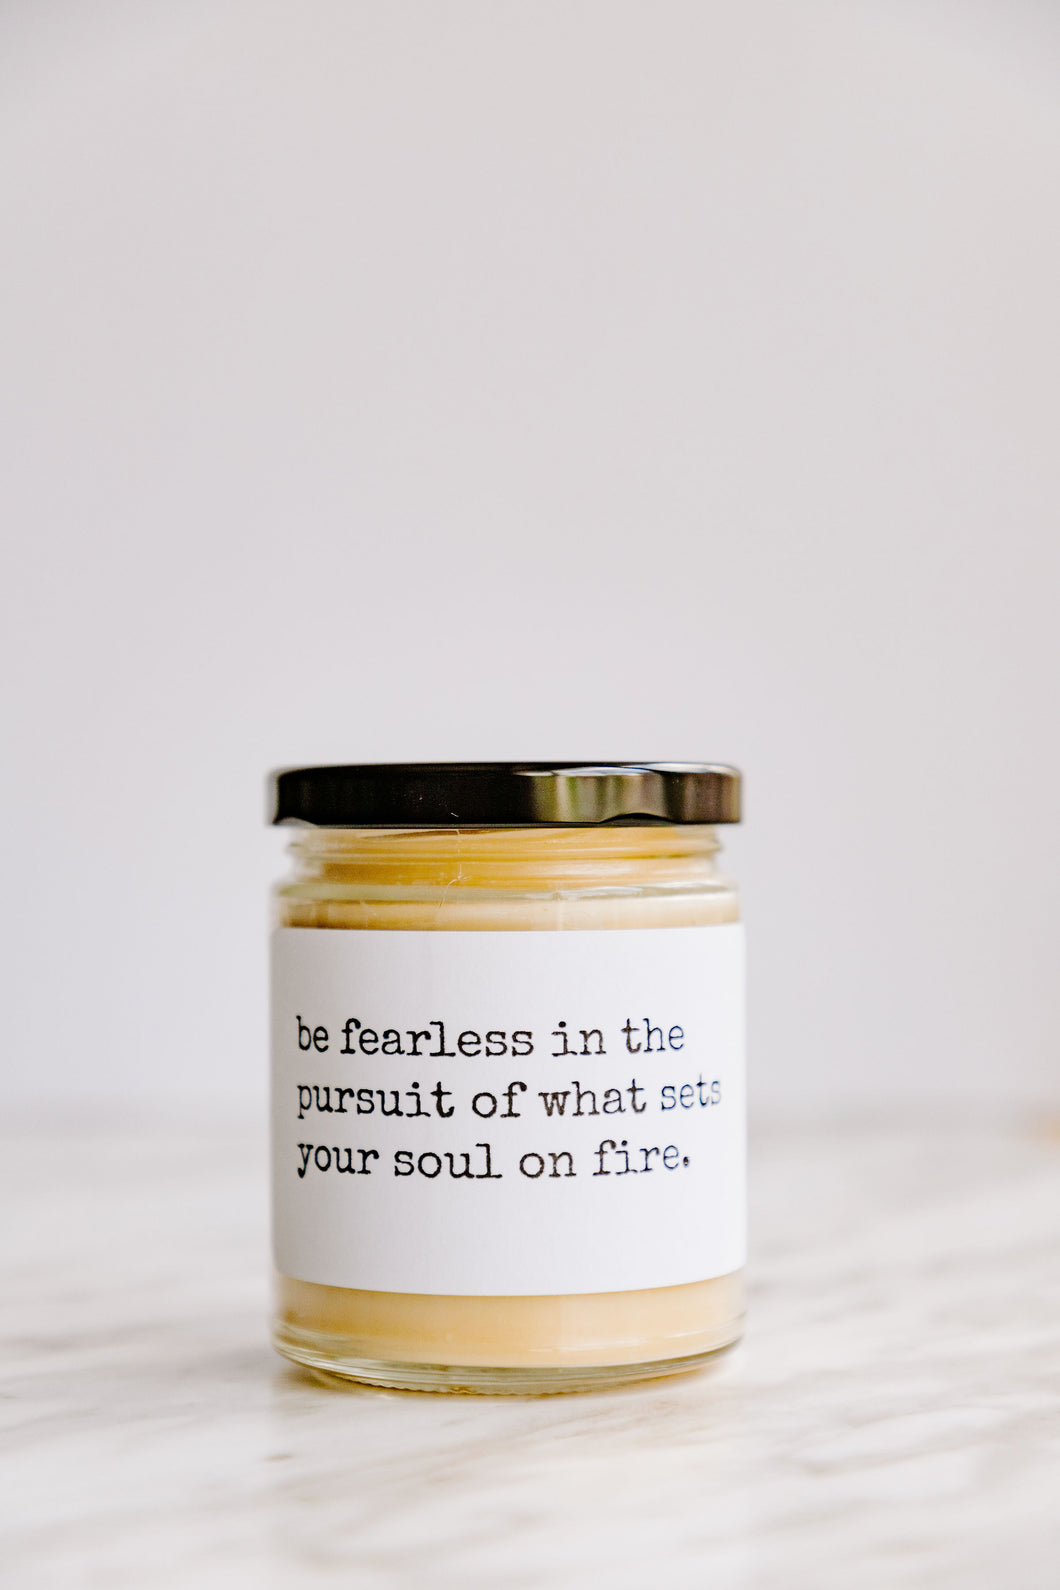 BE FEARLESS beeswax candle - Countryside Treasures